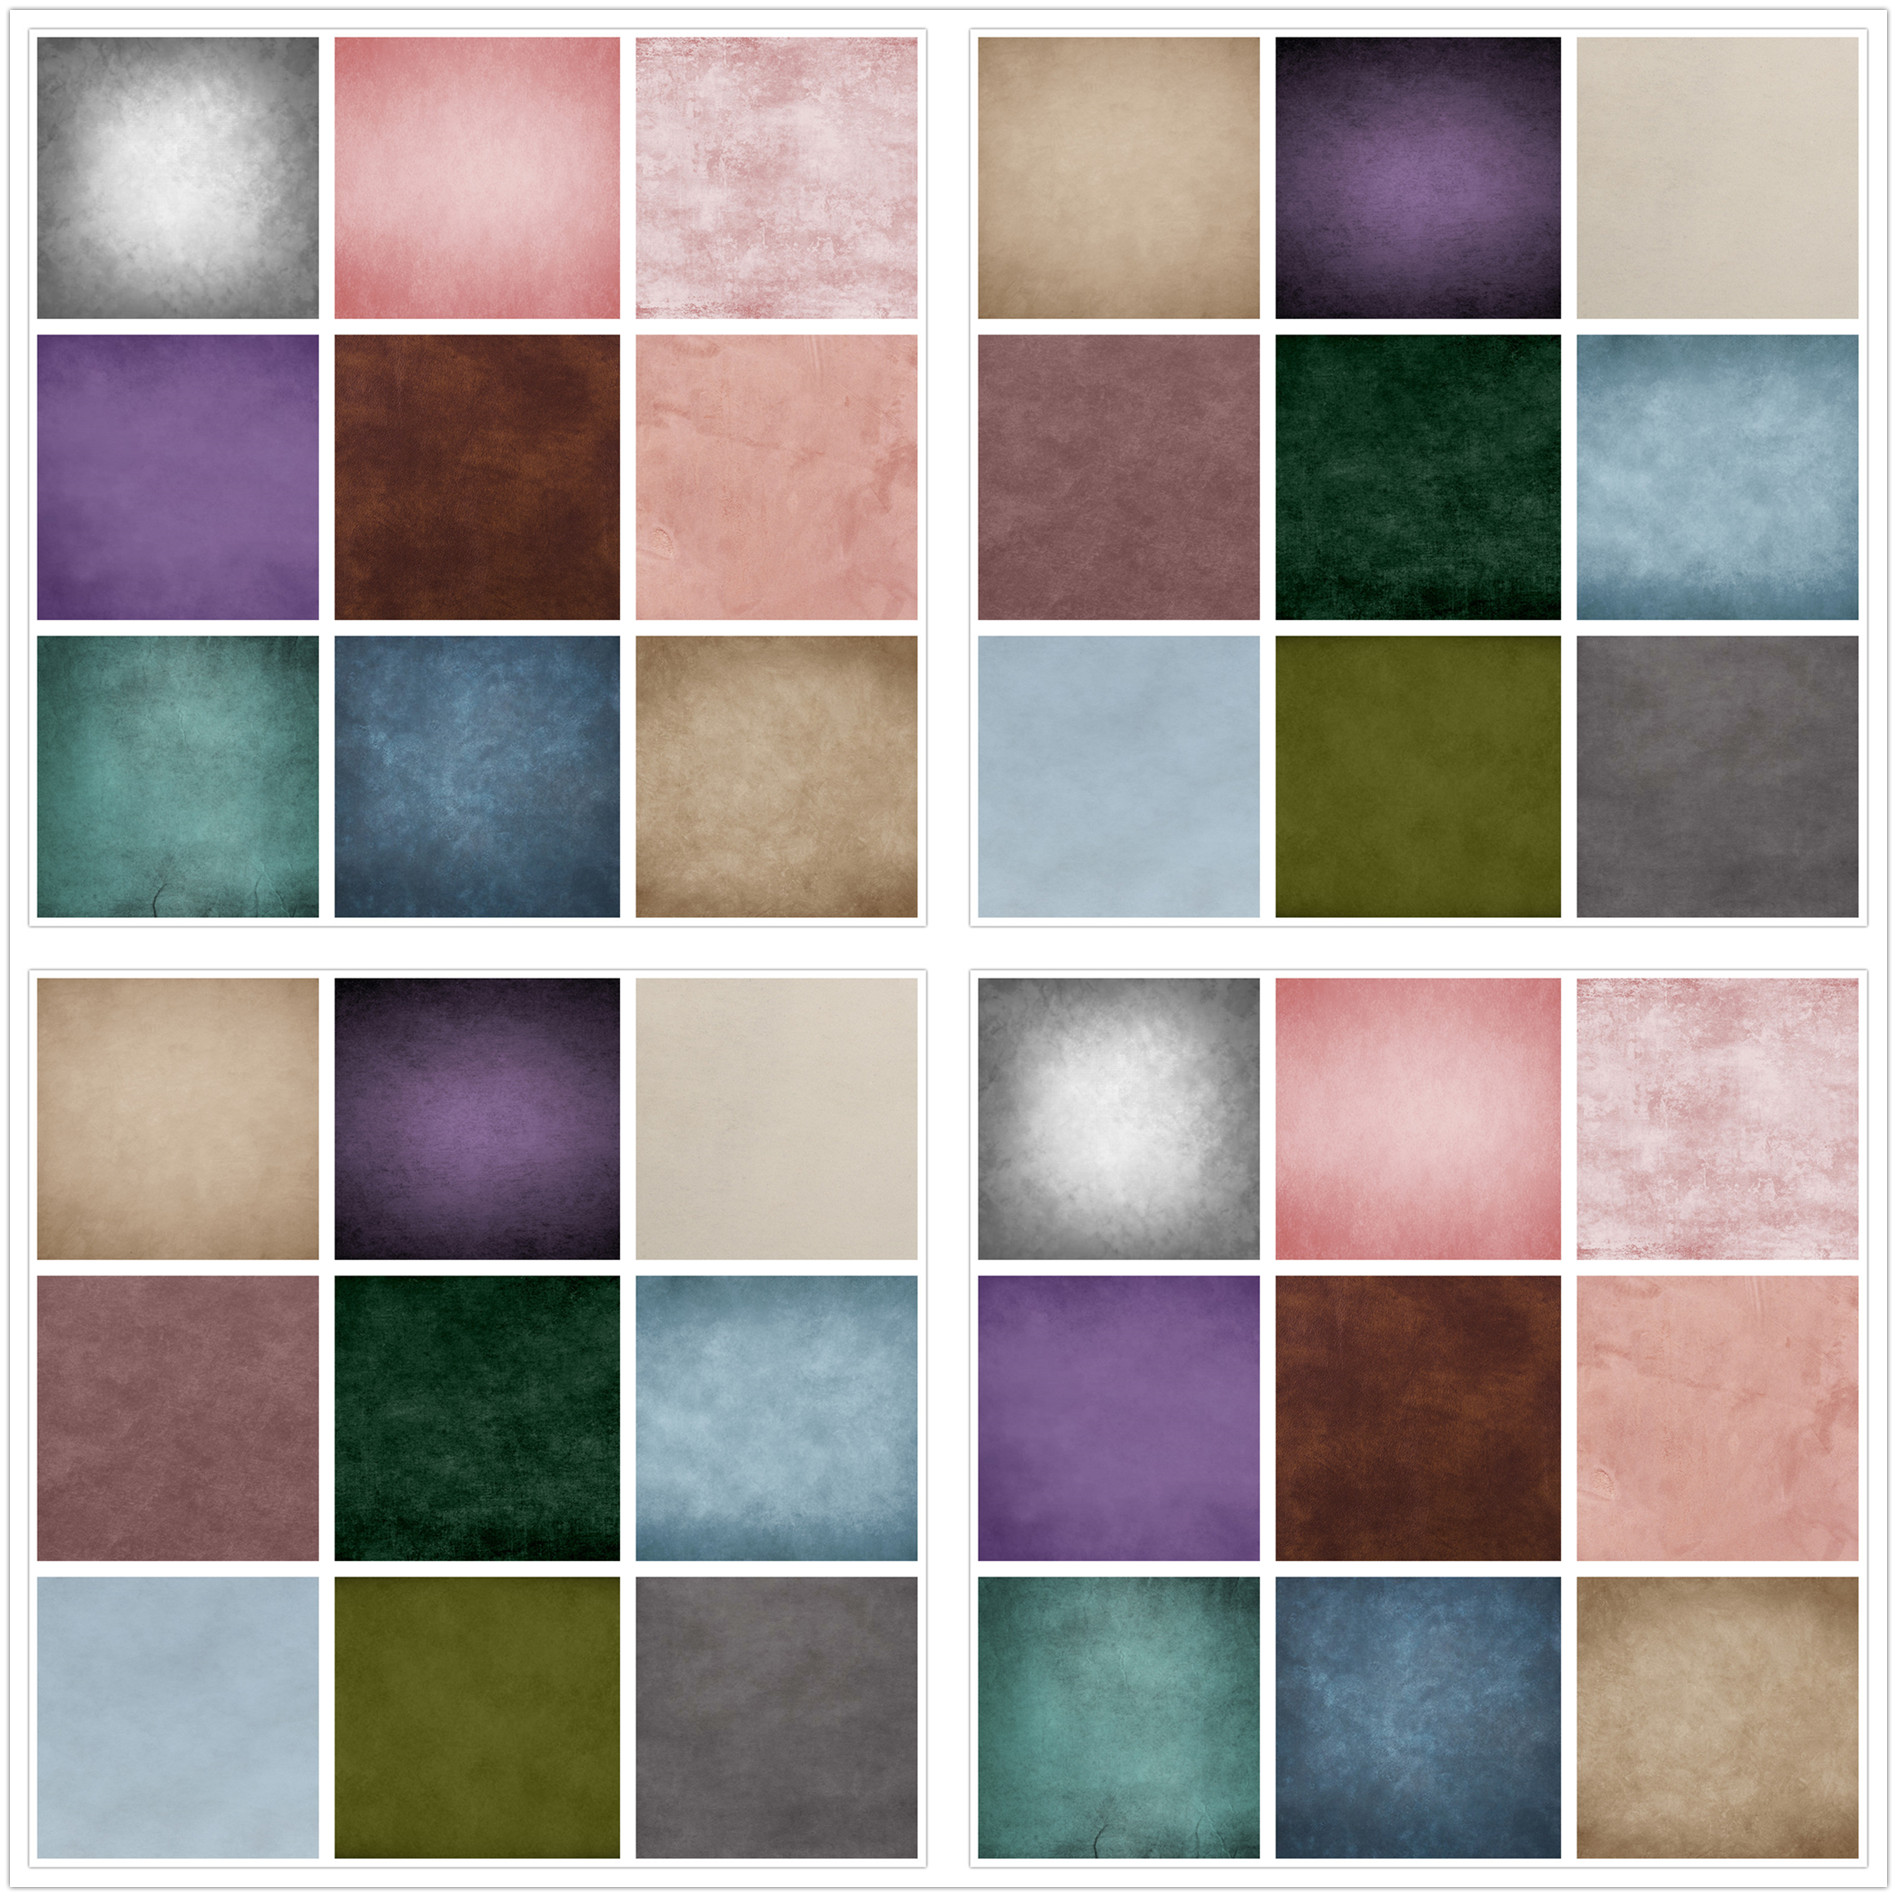 Photography Background Newborn Pink Solid Color Texture Wall Birthday Party Photo Background Baby Portraits Studio Backdrop Prop